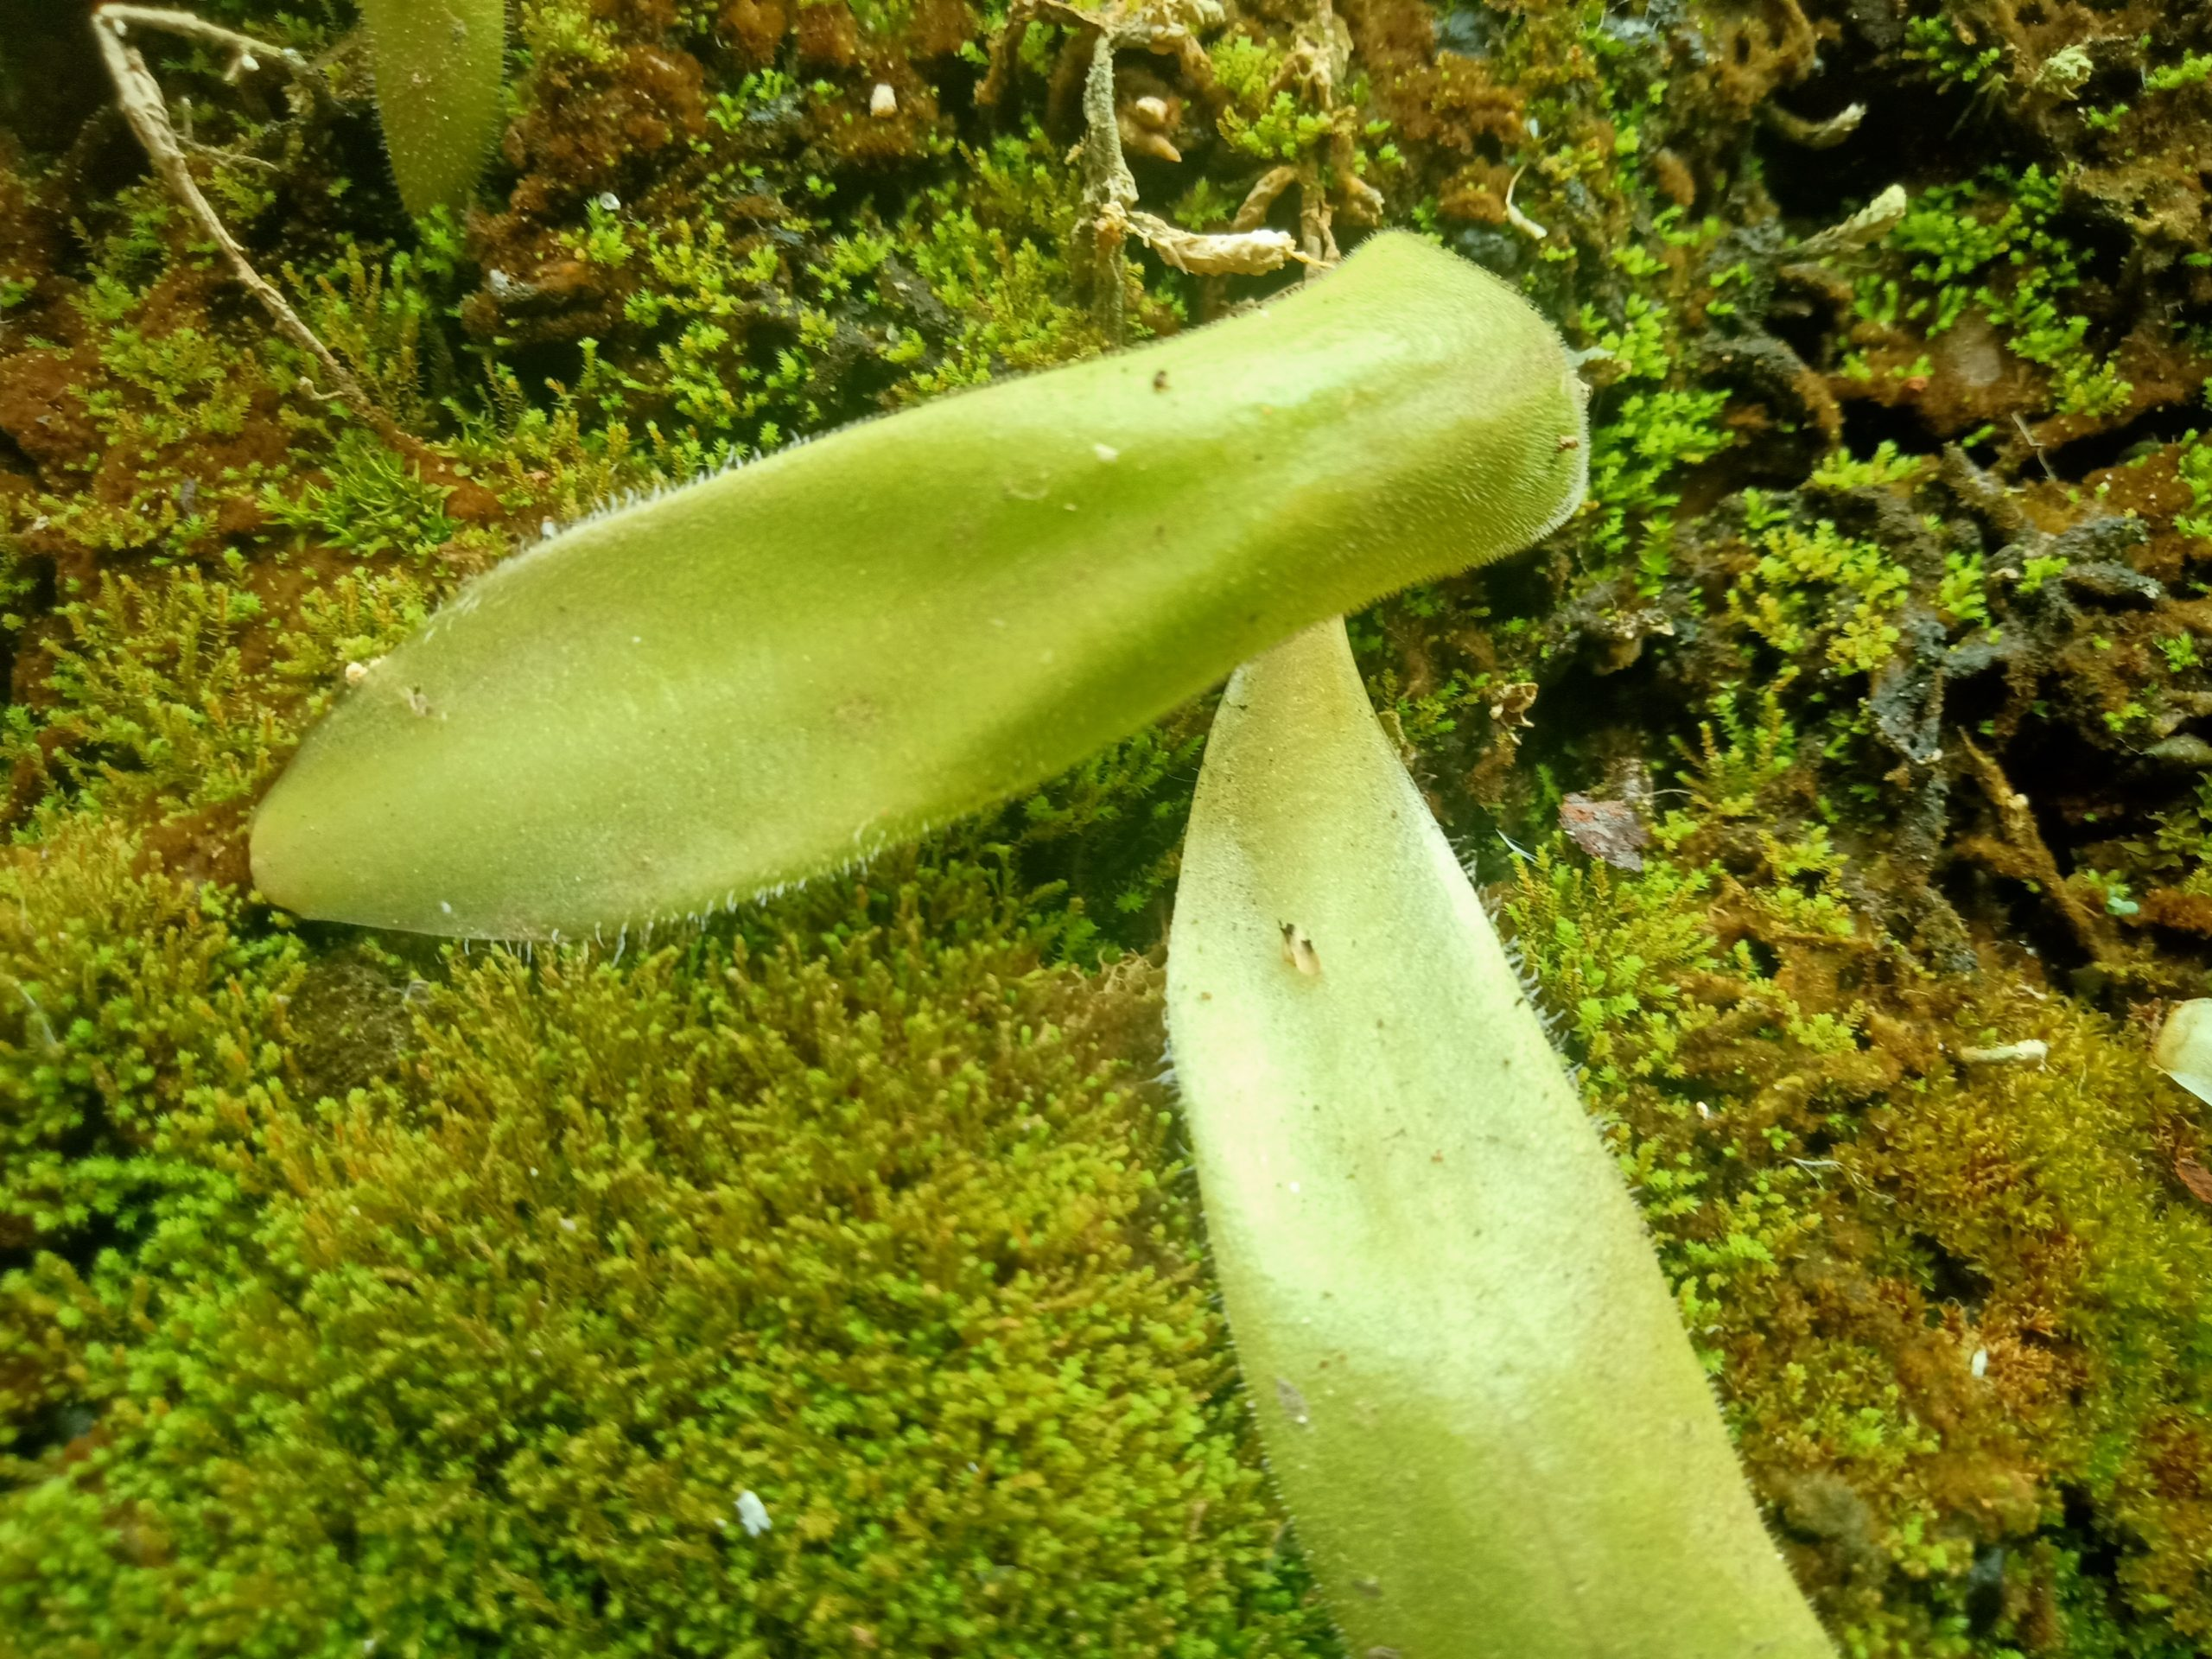 Pinguicula agnicola leaf pullings